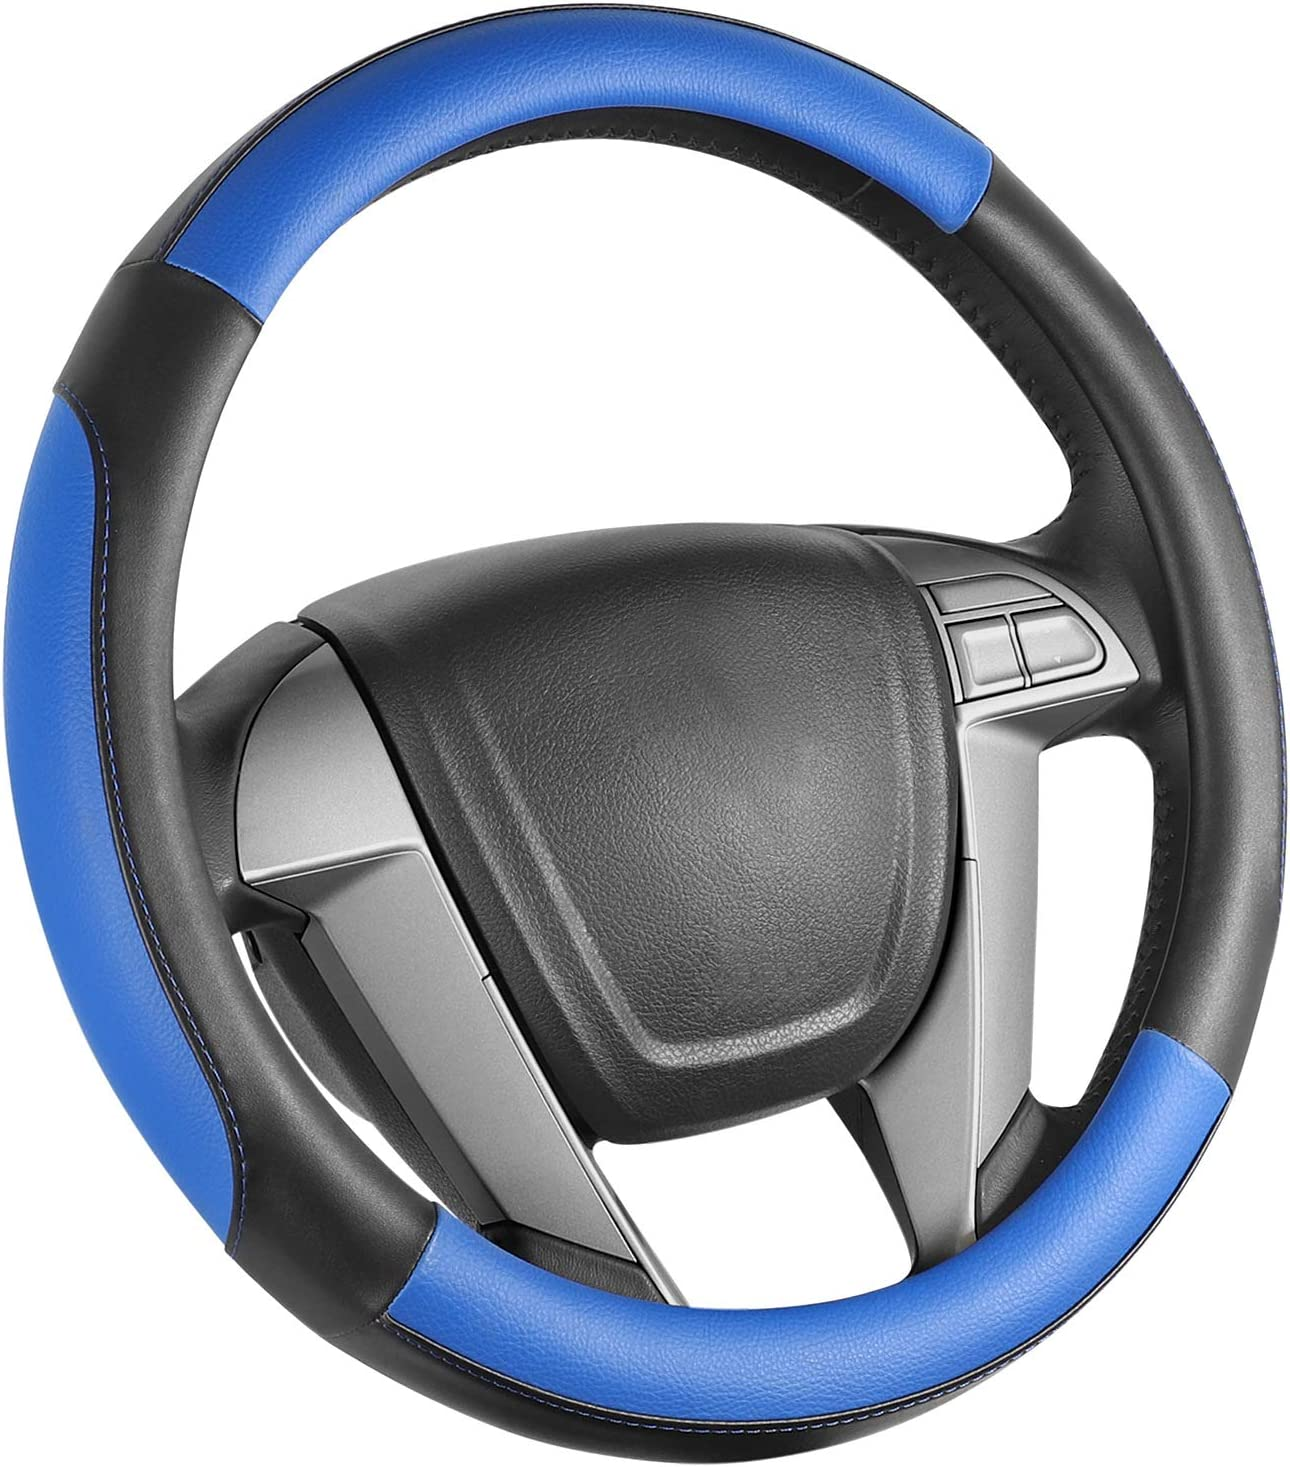 SEG Direct Car Steering Wheel Cover Small-Size for Prius Civic Model 3 Camaro Spark Rogue Mini Smart Audi with 14 inches-14 1/4 inches Outer Diameter, Blue Mirofiber Leather